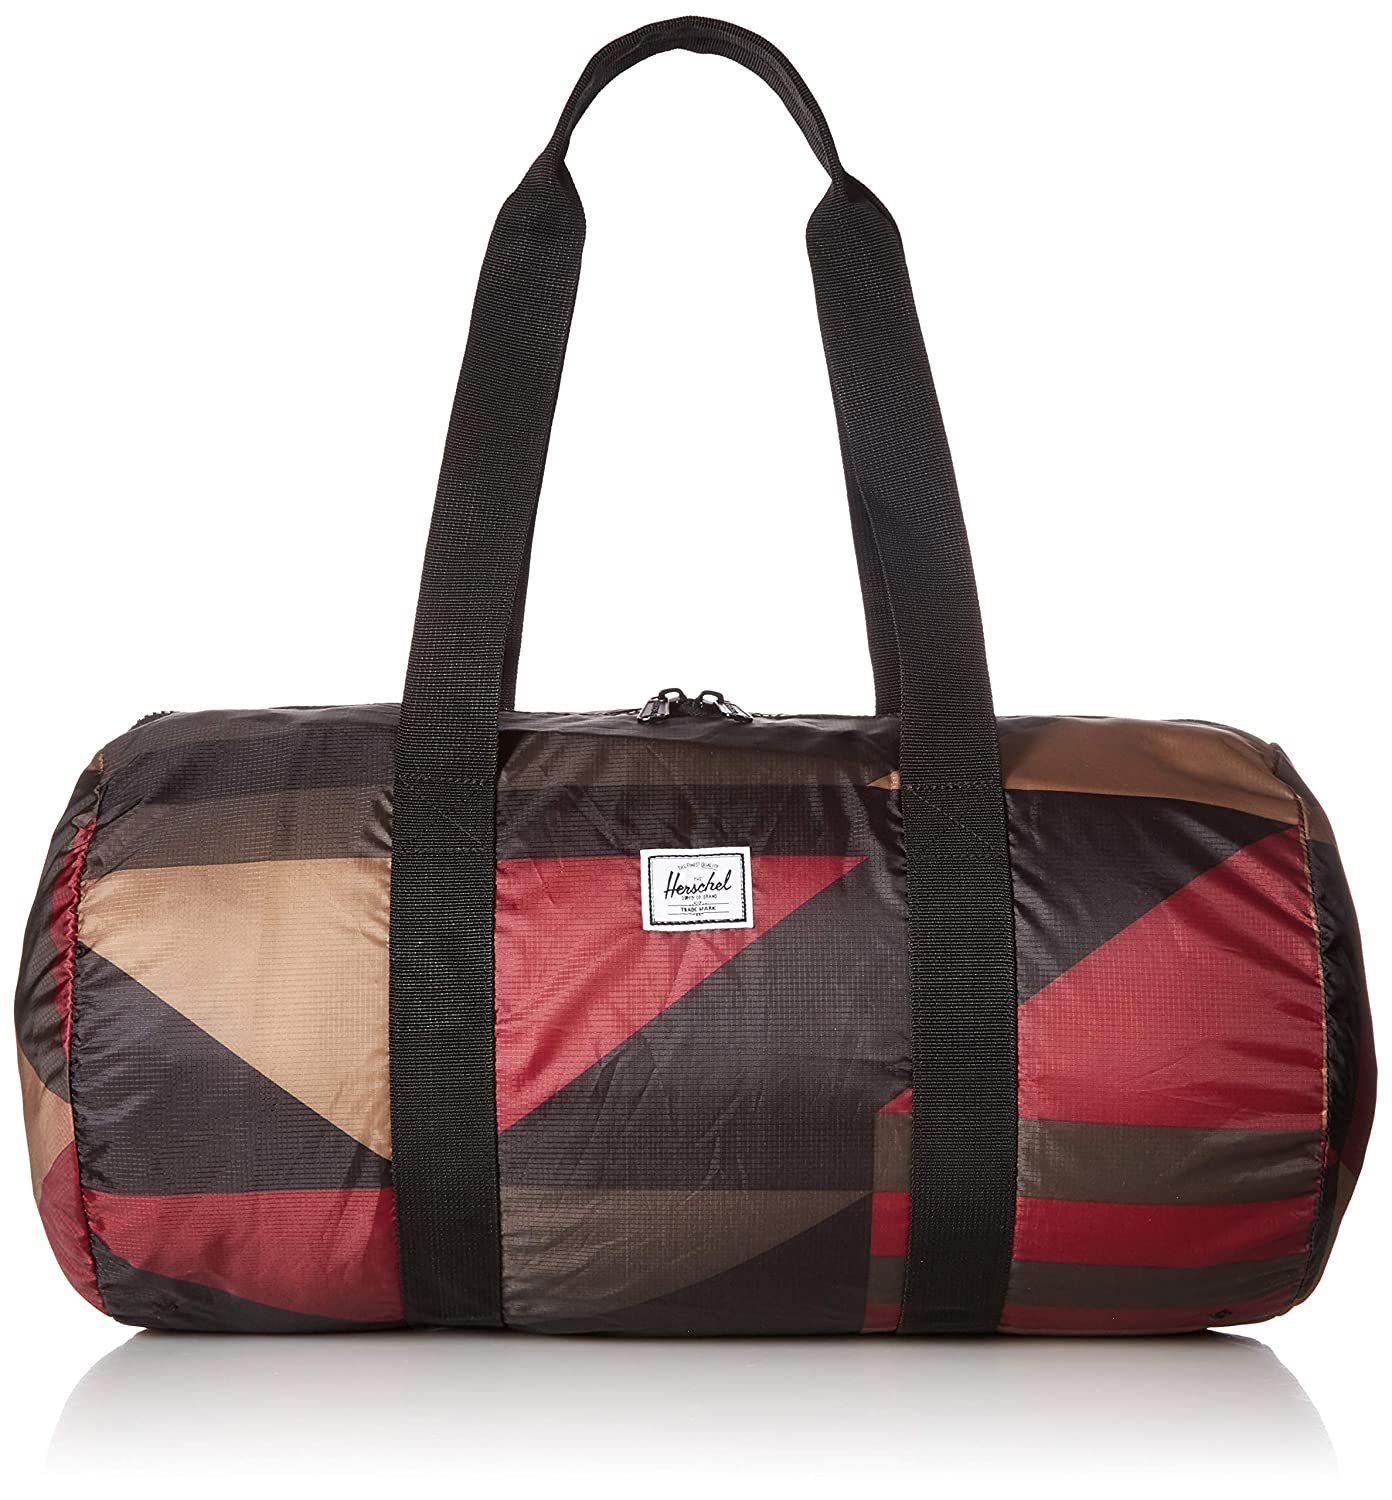 d3975f4305bb Herschel Supply Co Packable Travel Duffle Duffel Bag Windsor Wine ...